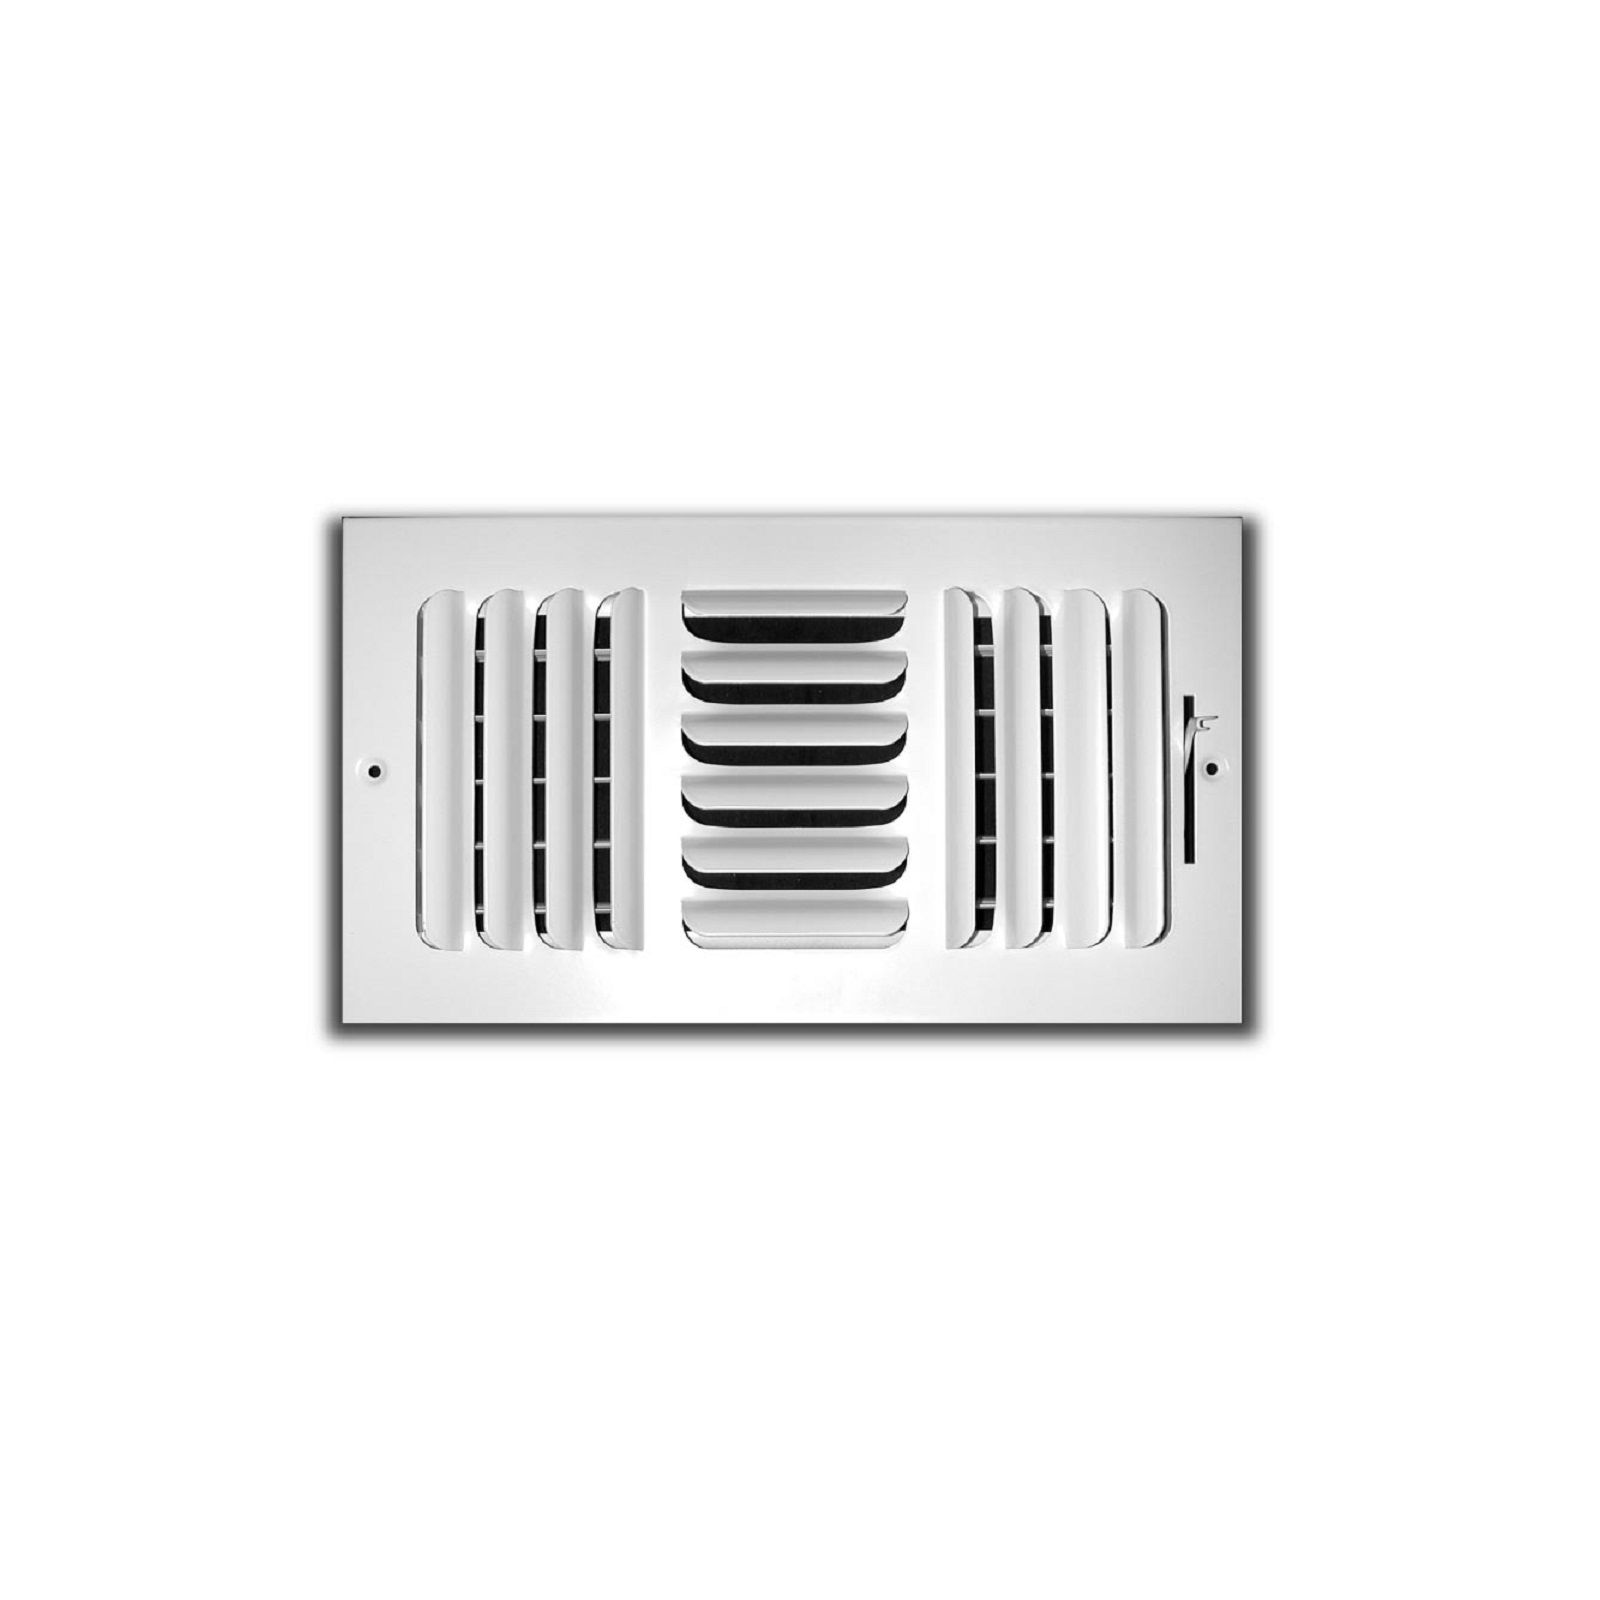 "TRUaire 403M 10X10 - Fixed Curved Blade Wall/Ceiling Register With Multi Shutter Damper, 3-Way, White, 10"" X 10"""